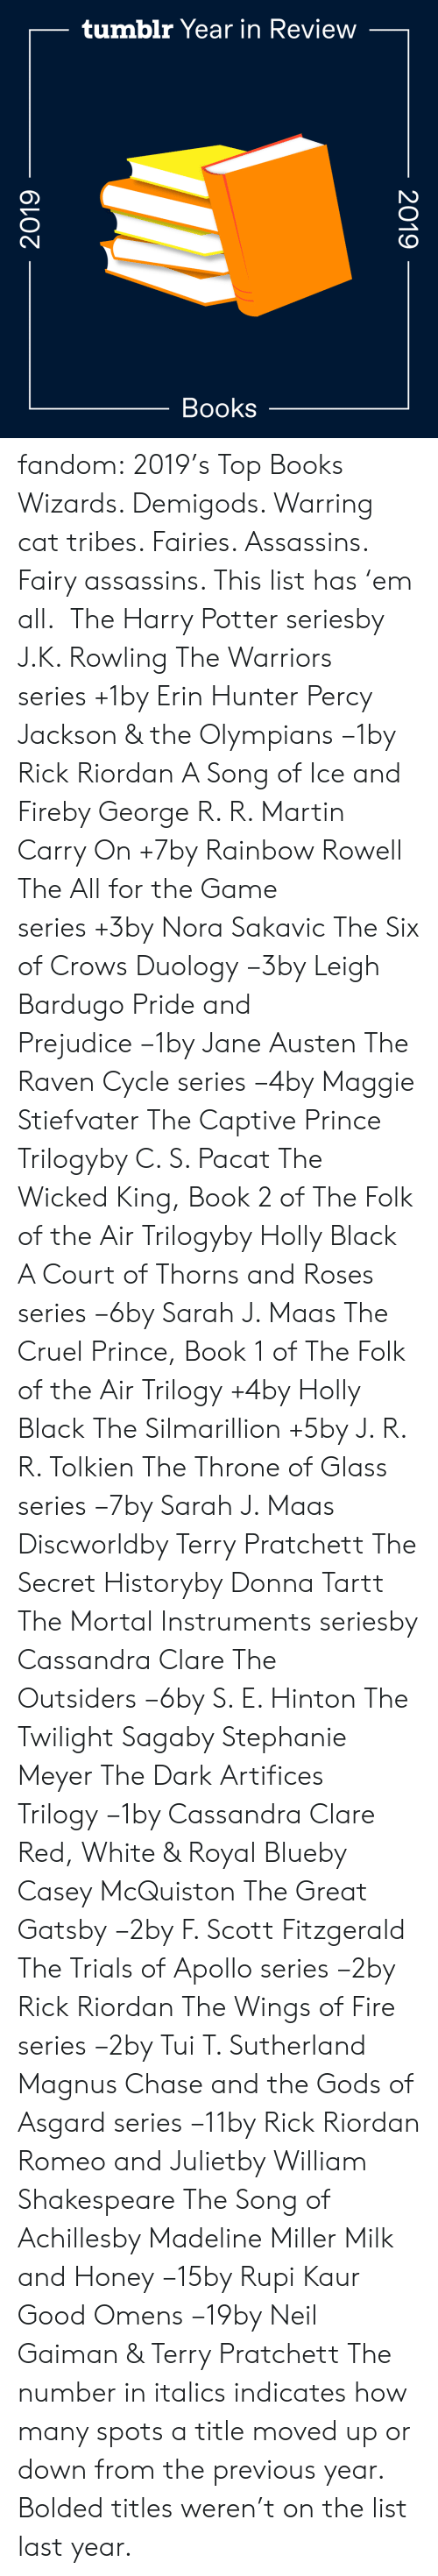 Books, Fire, and Gif: tumblr Year in Review  Books  2019  2019 fandom:  2019's Top Books  Wizards. Demigods. Warring cat tribes. Fairies. Assassins. Fairy assassins. This list has 'em all.   The Harry Potter seriesby J.K. Rowling  The Warriors series +1by Erin Hunter  Percy Jackson & the Olympians −1by Rick Riordan  A Song of Ice and Fireby George R. R. Martin  Carry On +7by Rainbow Rowell  The All for the Game series +3by Nora Sakavic  The Six of Crows Duology −3by Leigh Bardugo  Pride and Prejudice −1by Jane Austen  The Raven Cycle series −4by Maggie Stiefvater  The Captive Prince Trilogyby C. S. Pacat  The Wicked King, Book 2 of The Folk of the Air Trilogyby Holly Black  A Court of Thorns and Roses series −6by Sarah J. Maas  The Cruel Prince, Book 1 of The Folk of the Air Trilogy +4by Holly Black  The Silmarillion +5by J. R. R. Tolkien  The Throne of Glass series −7by Sarah J. Maas  Discworldby Terry Pratchett  The Secret Historyby Donna Tartt  The Mortal Instruments seriesby Cassandra Clare  The Outsiders −6by S. E. Hinton  The Twilight Sagaby Stephanie Meyer  The Dark Artifices Trilogy −1by Cassandra Clare  Red, White & Royal Blueby Casey McQuiston  The Great Gatsby −2by F. Scott Fitzgerald  The Trials of Apollo series −2by Rick Riordan  The Wings of Fire series −2by Tui T. Sutherland  Magnus Chase and the Gods of Asgard series −11by Rick Riordan  Romeo and Julietby William Shakespeare  The Song of Achillesby Madeline Miller  Milk and Honey −15by Rupi Kaur  Good Omens −19by Neil Gaiman & Terry Pratchett The number in italics indicates how many spots a title moved up or down from the previous year. Bolded titles weren't on the list last year.